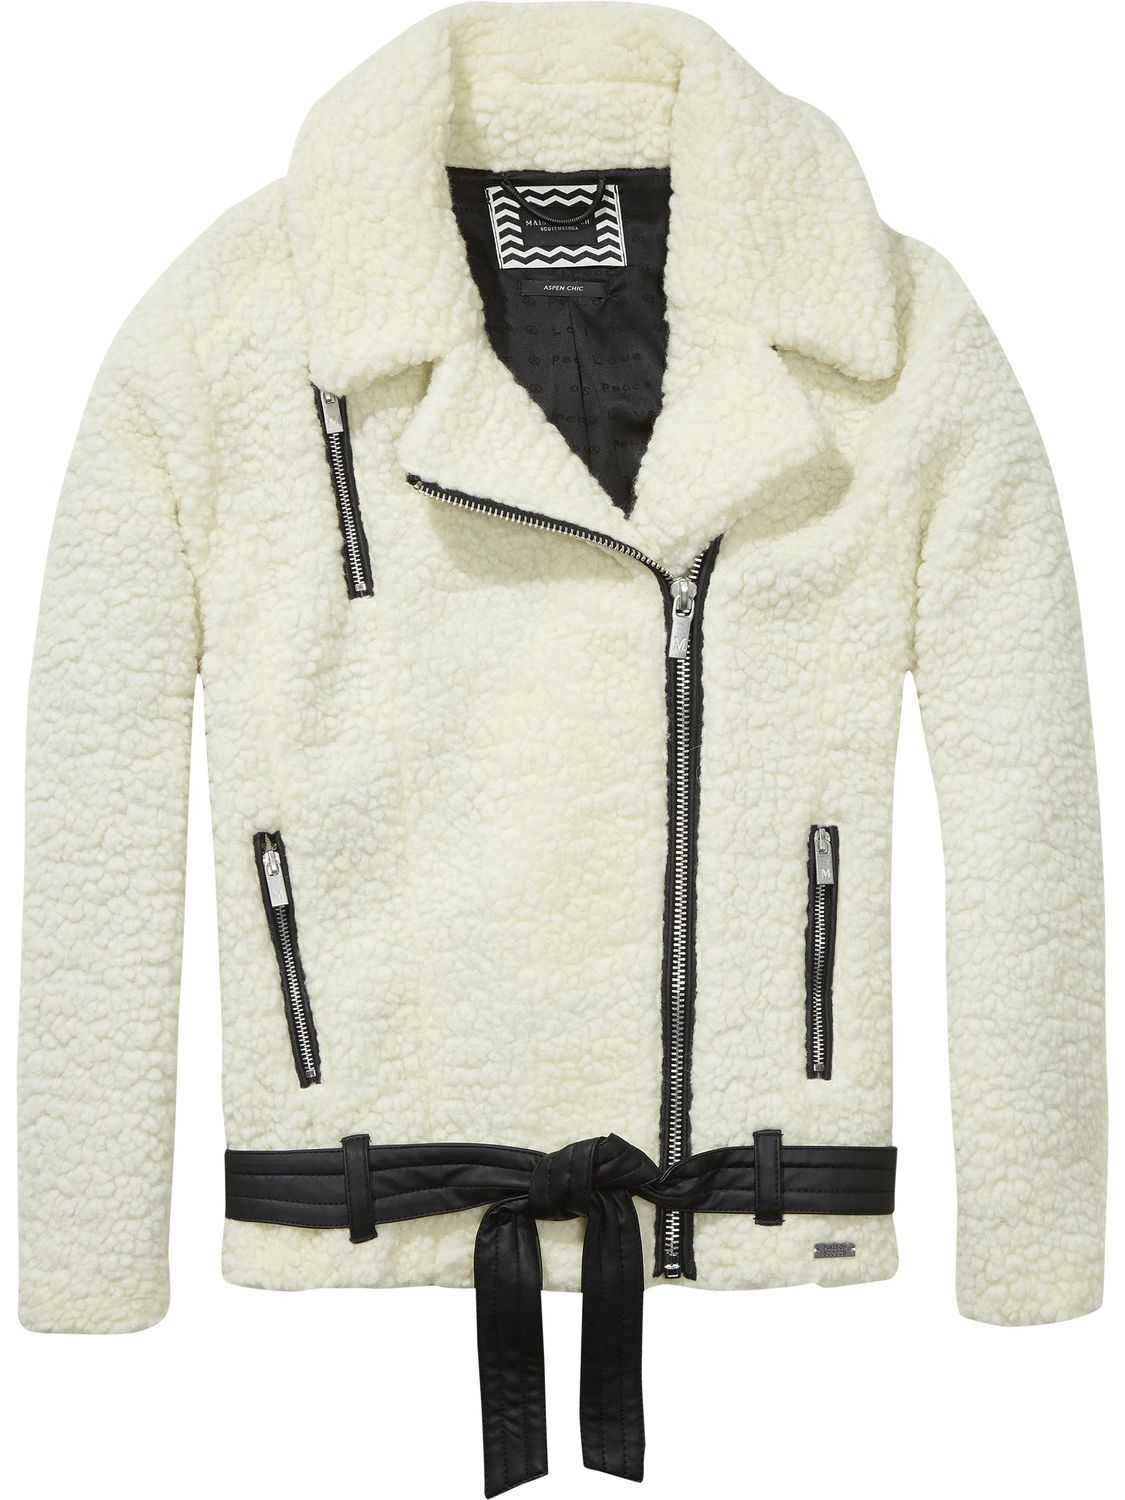 Shop the latest women's clothing and apparel from the official Maison Scotch  webstore.